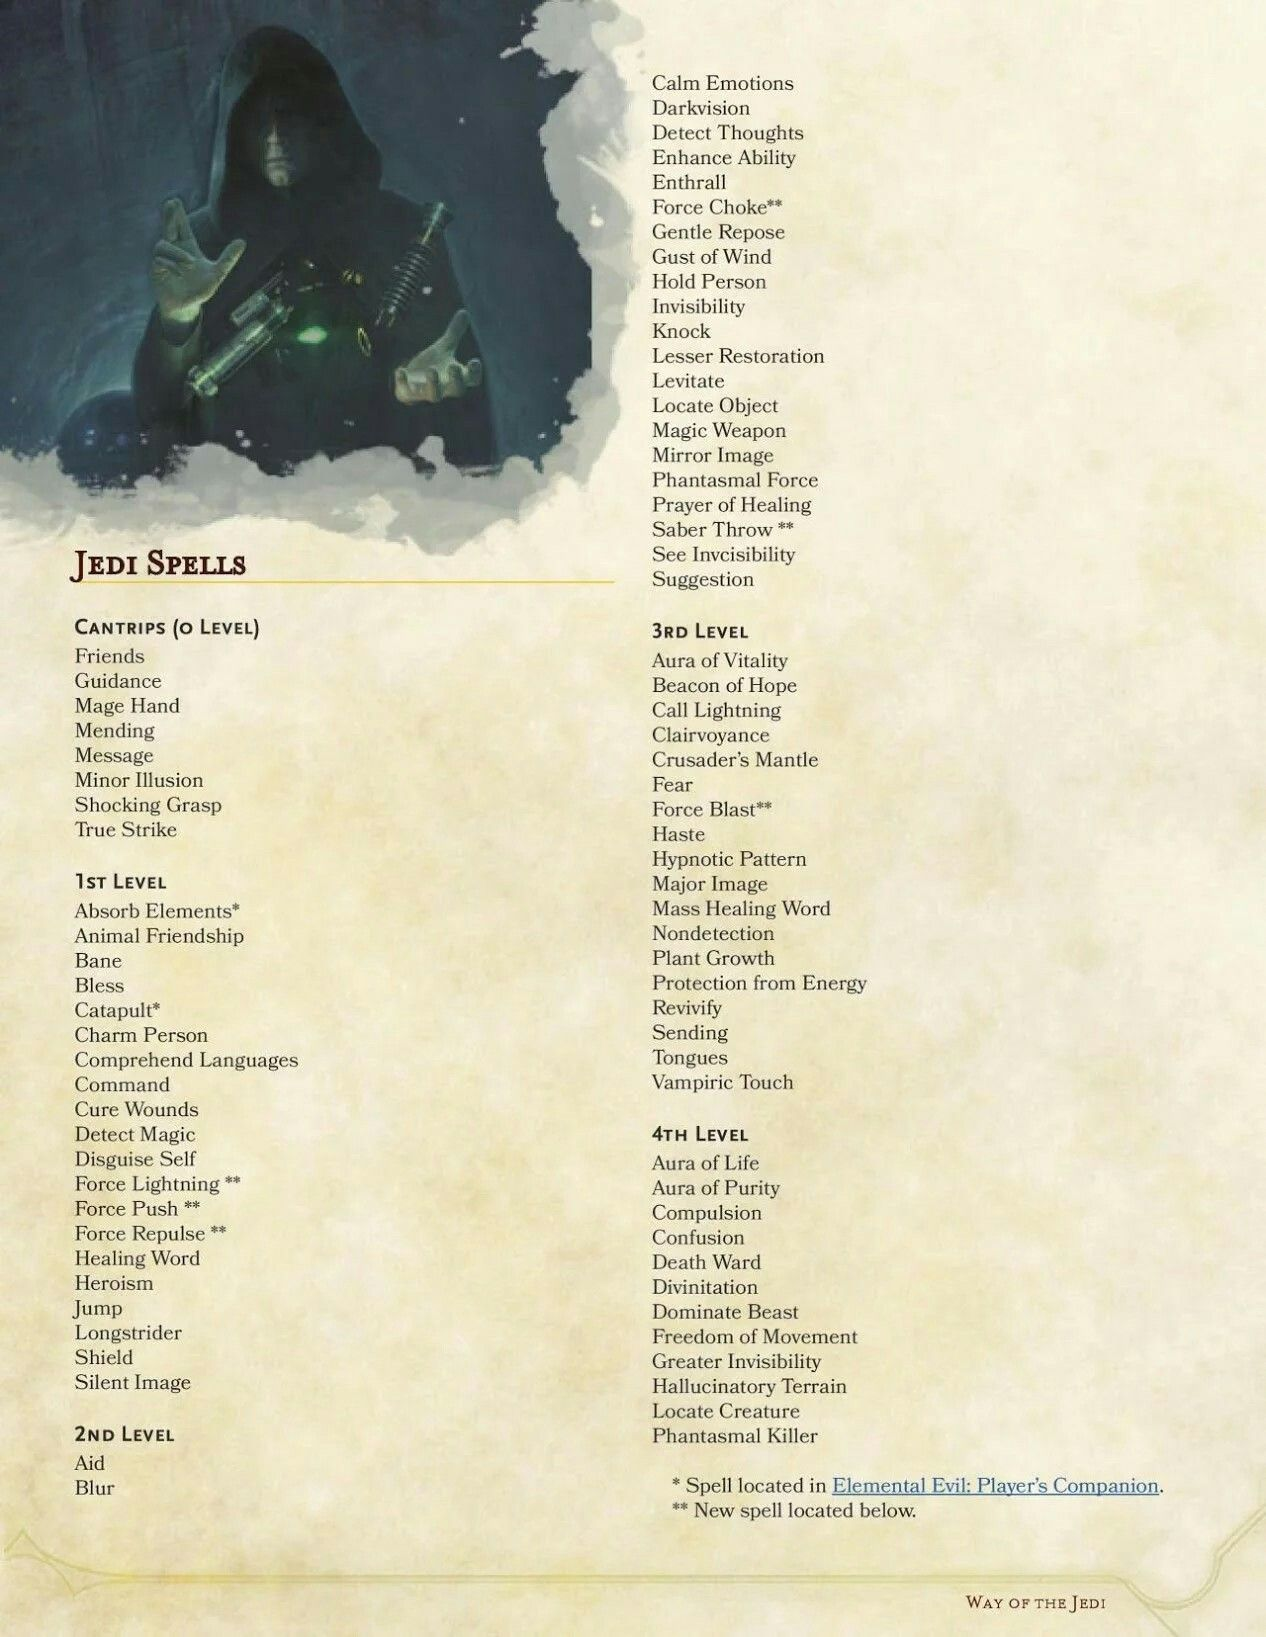 Pin by Justin Metesh on Character in 2019 | Dnd 5e homebrew